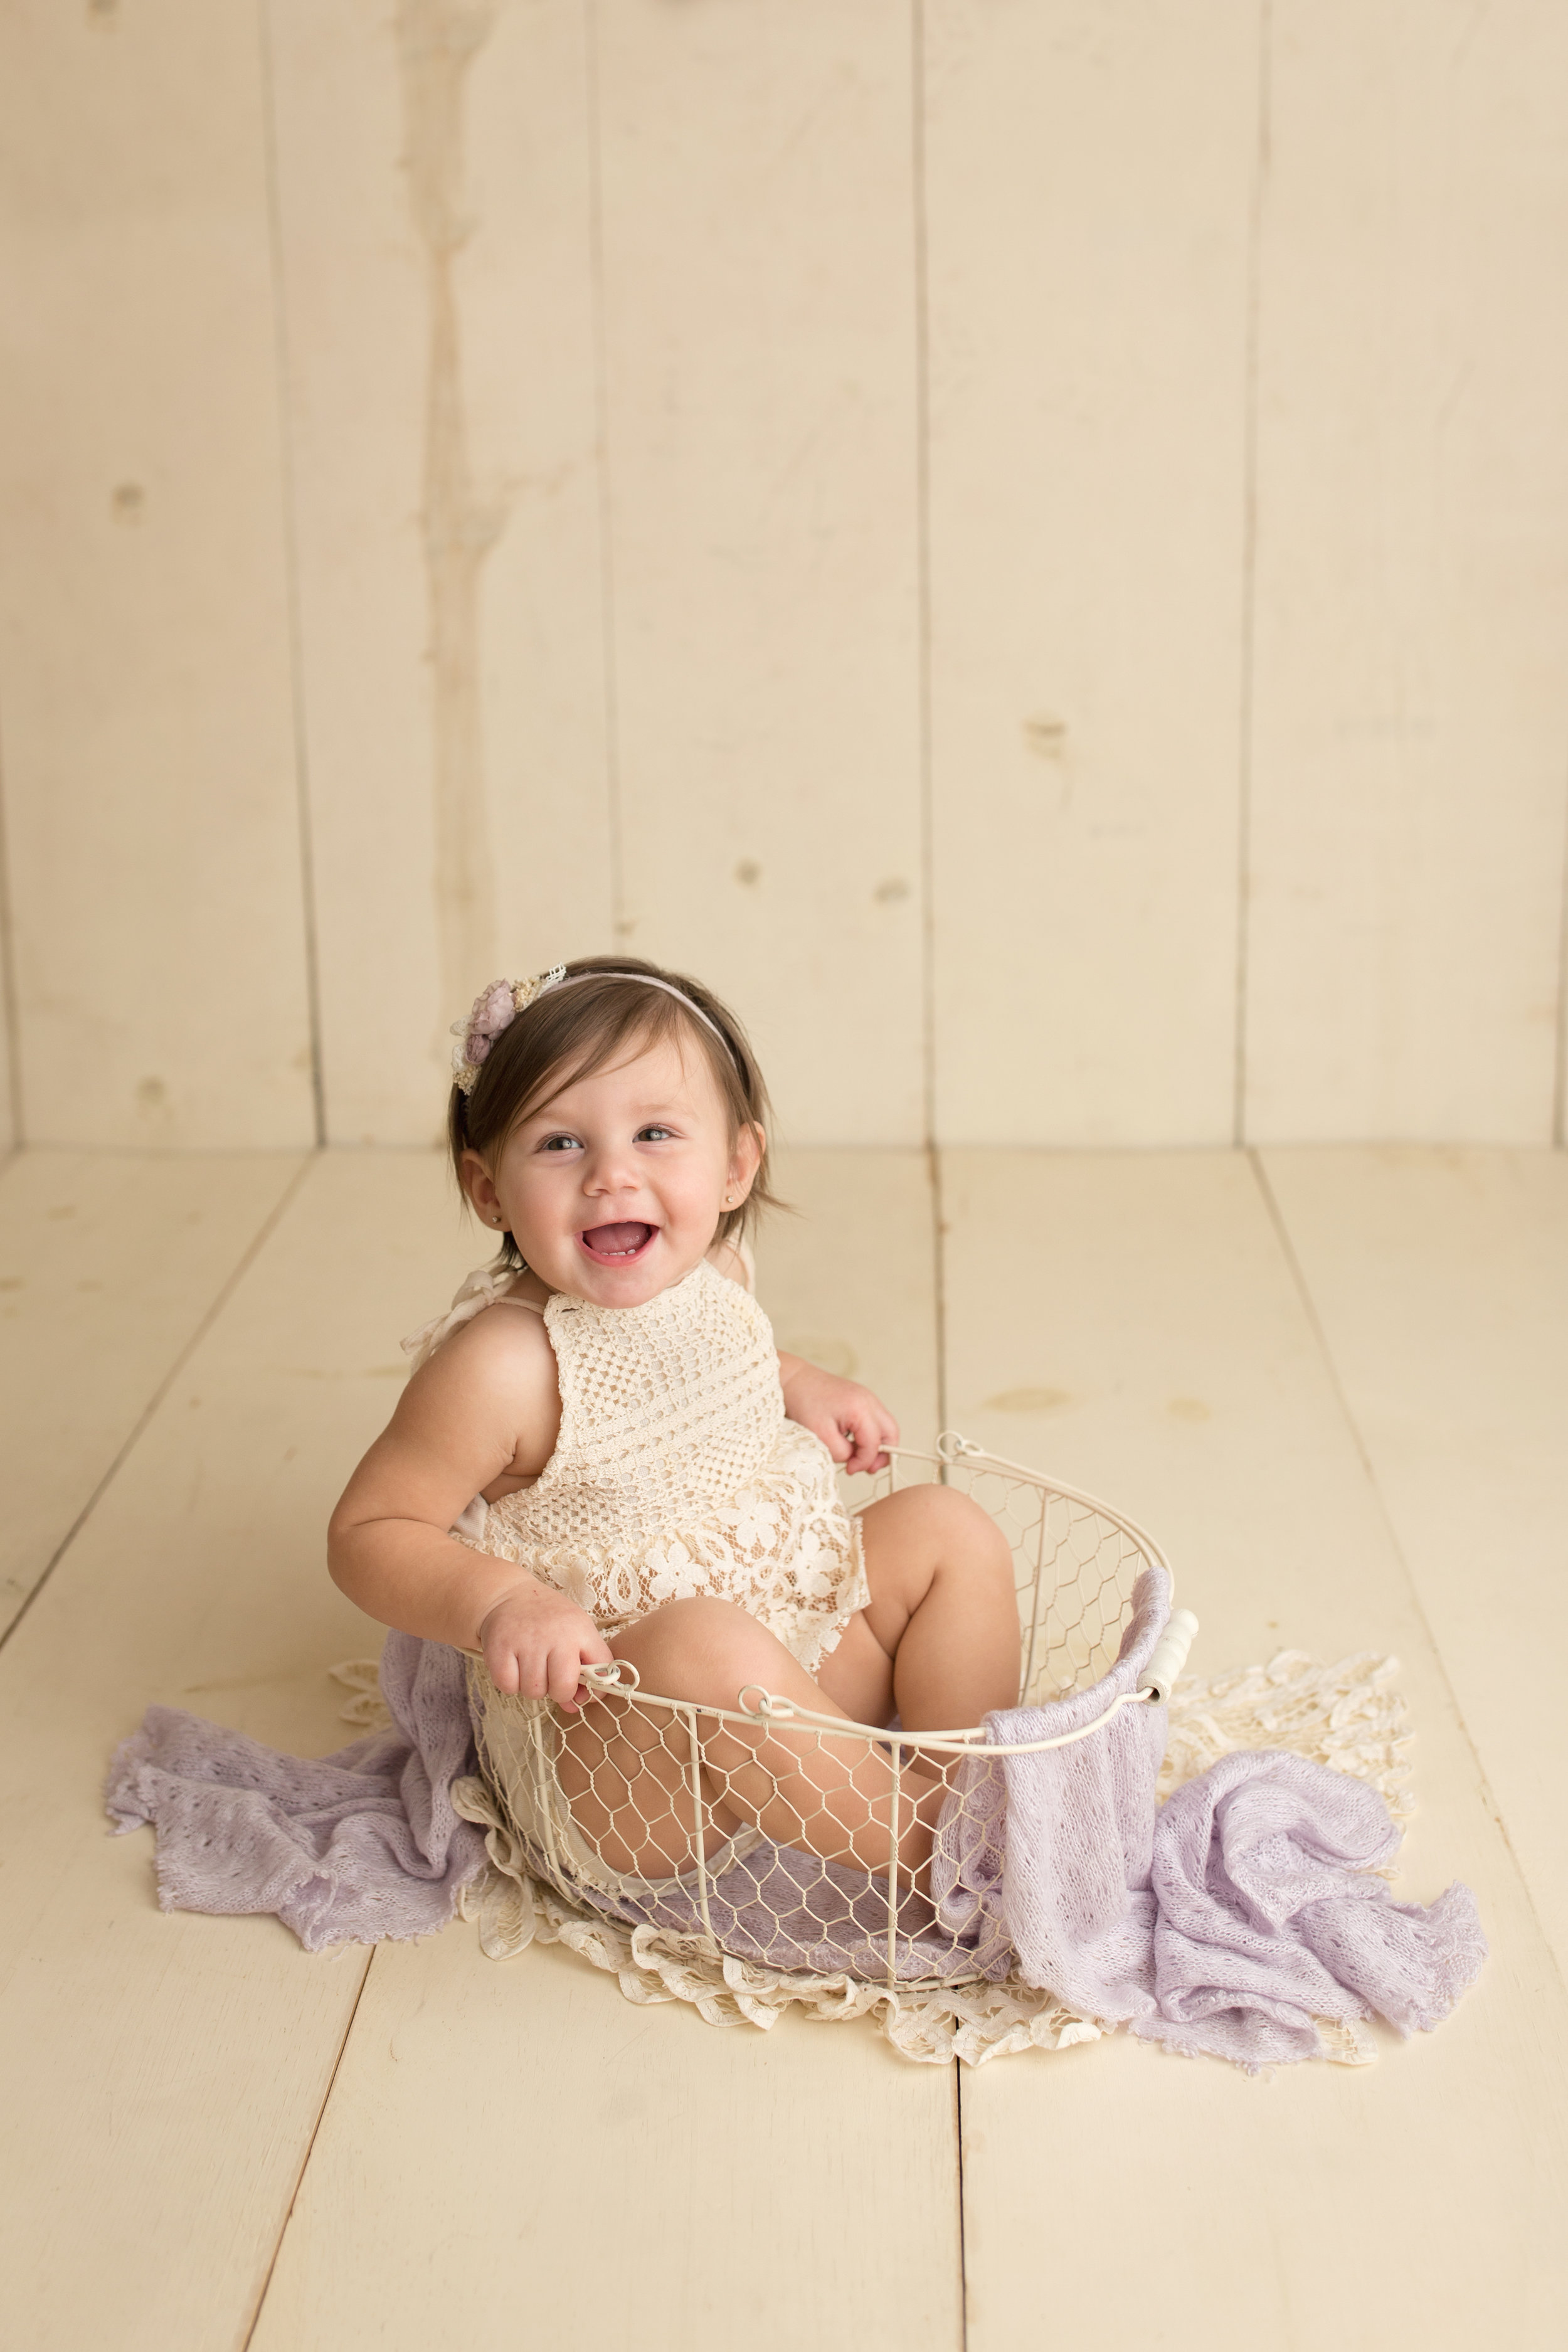 How are you even real? She really loved getting her pictures taken in the basket for some reason. No complaints here!